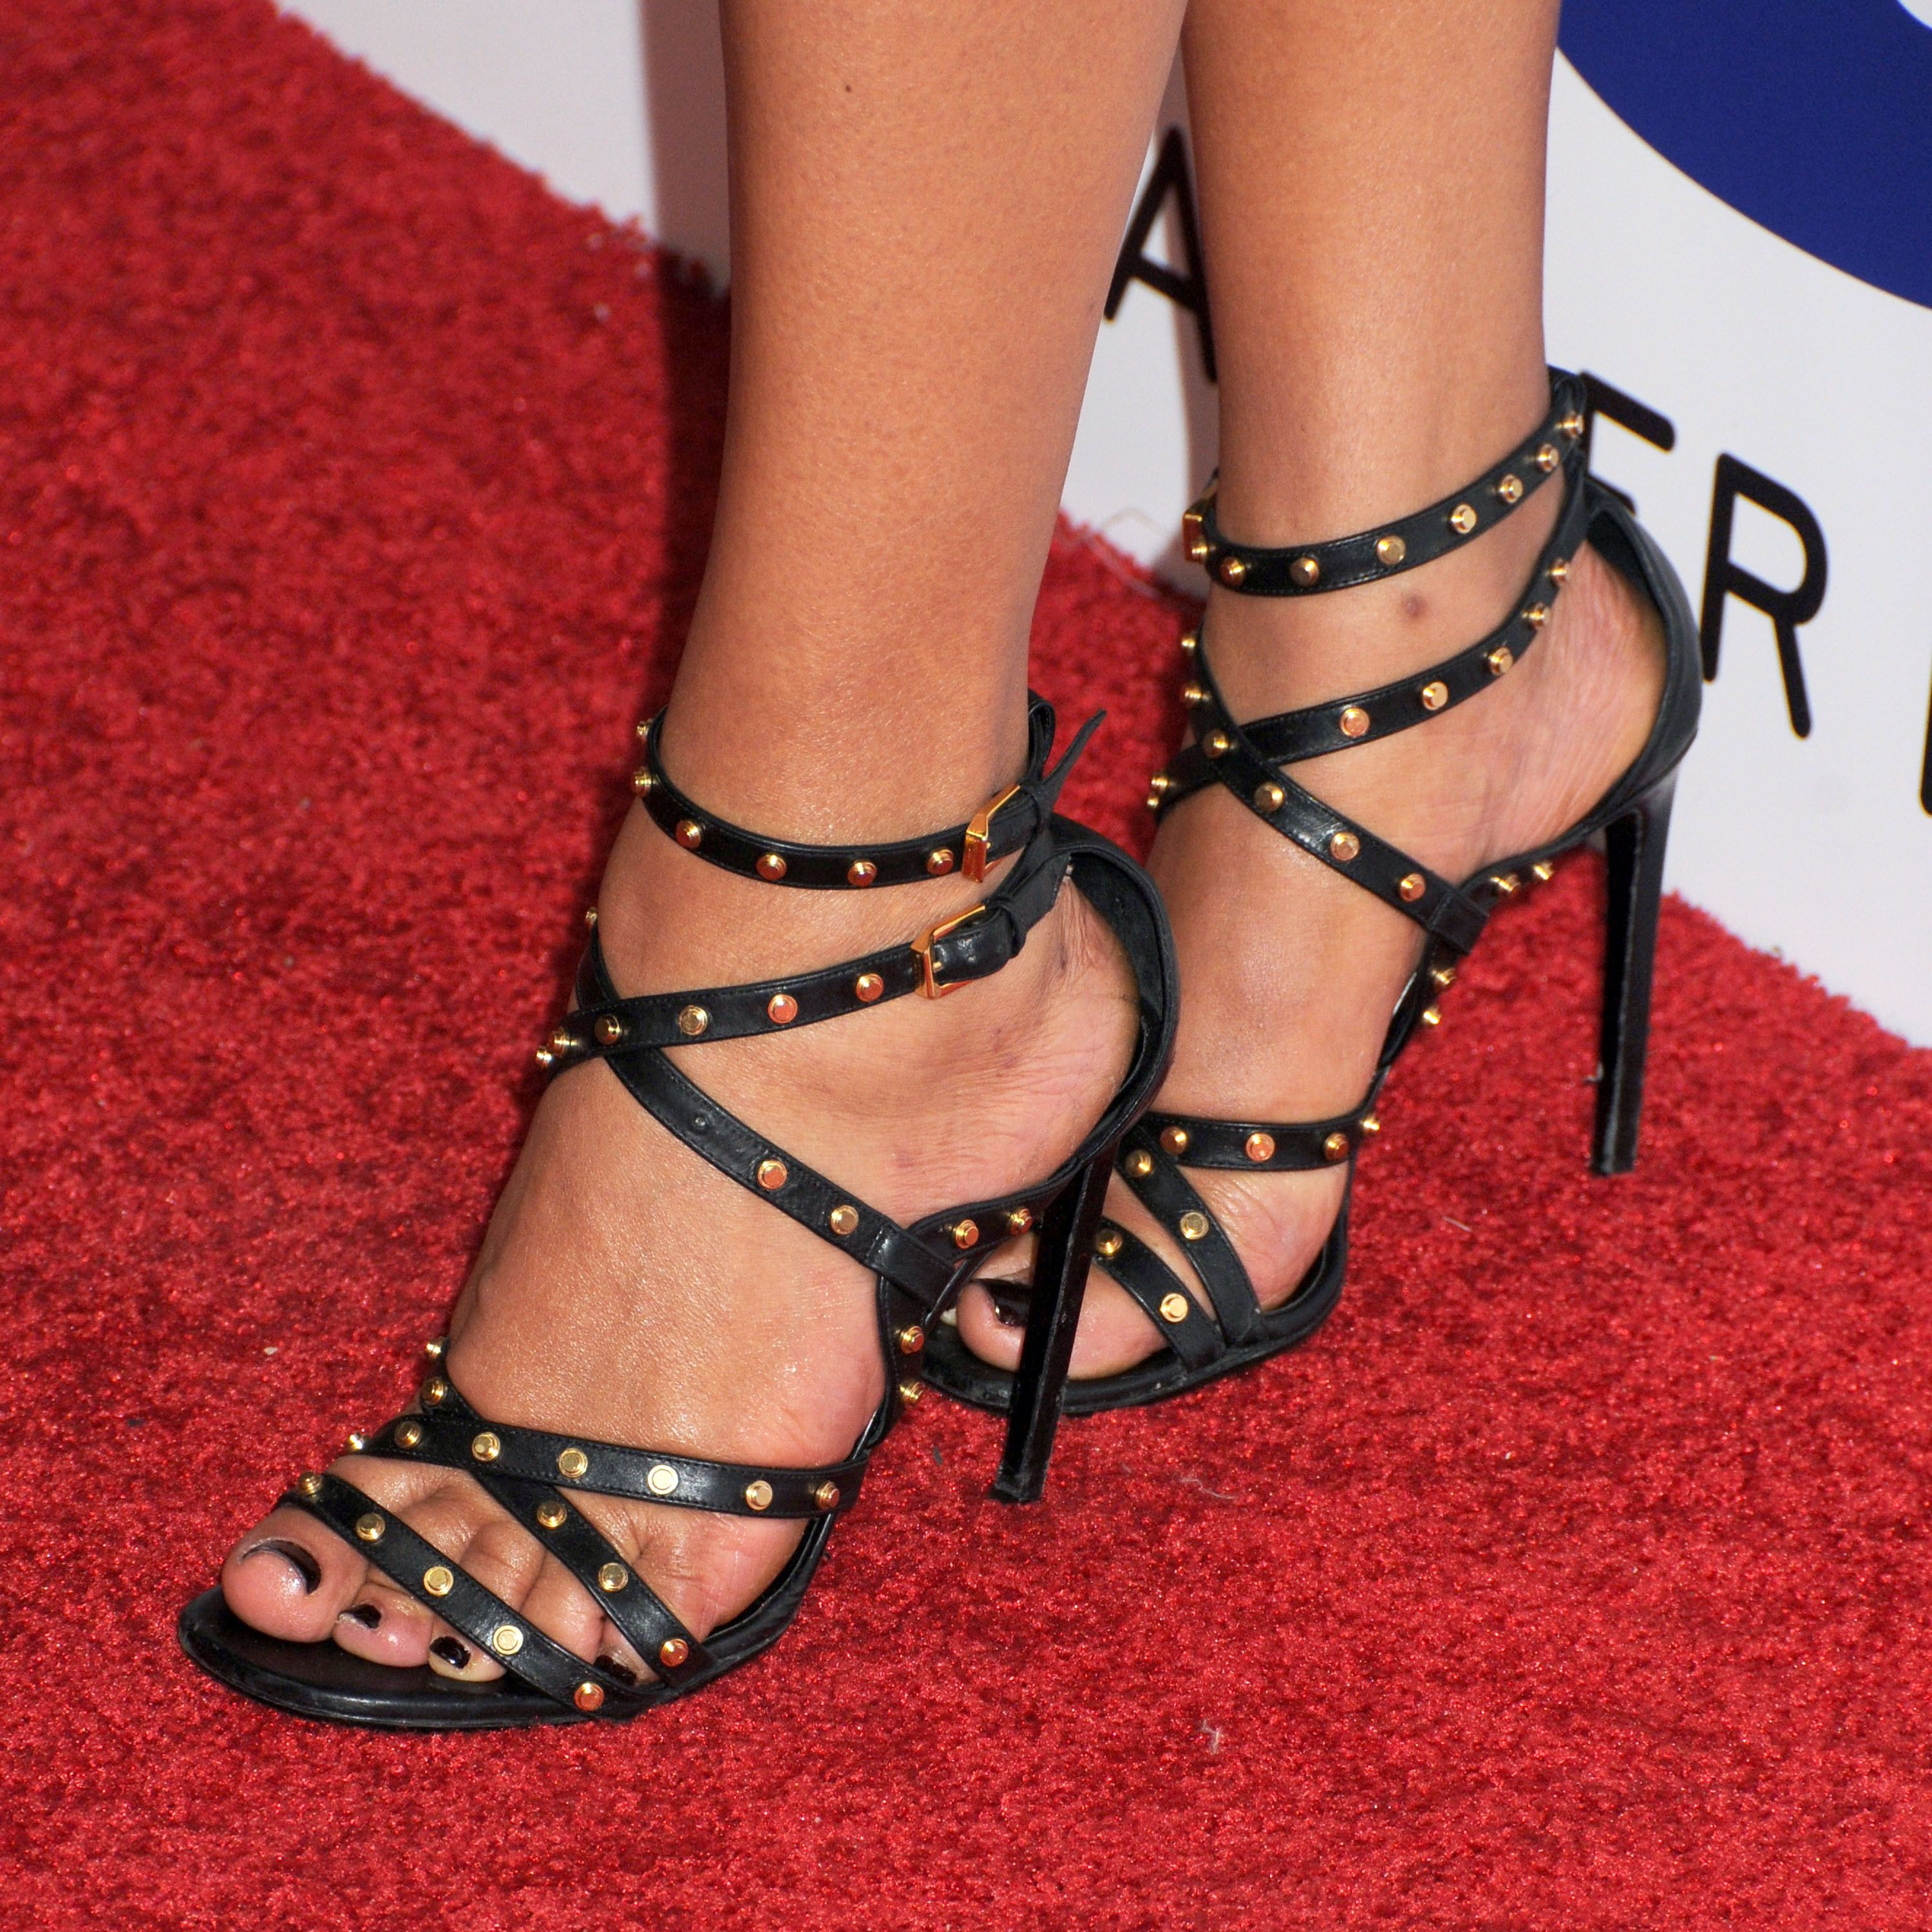 Share, rate and discuss pictures of Sanaa Lathan's feet on wikiFeet - the  most comprehensive celebrity feet database to ever have existed.